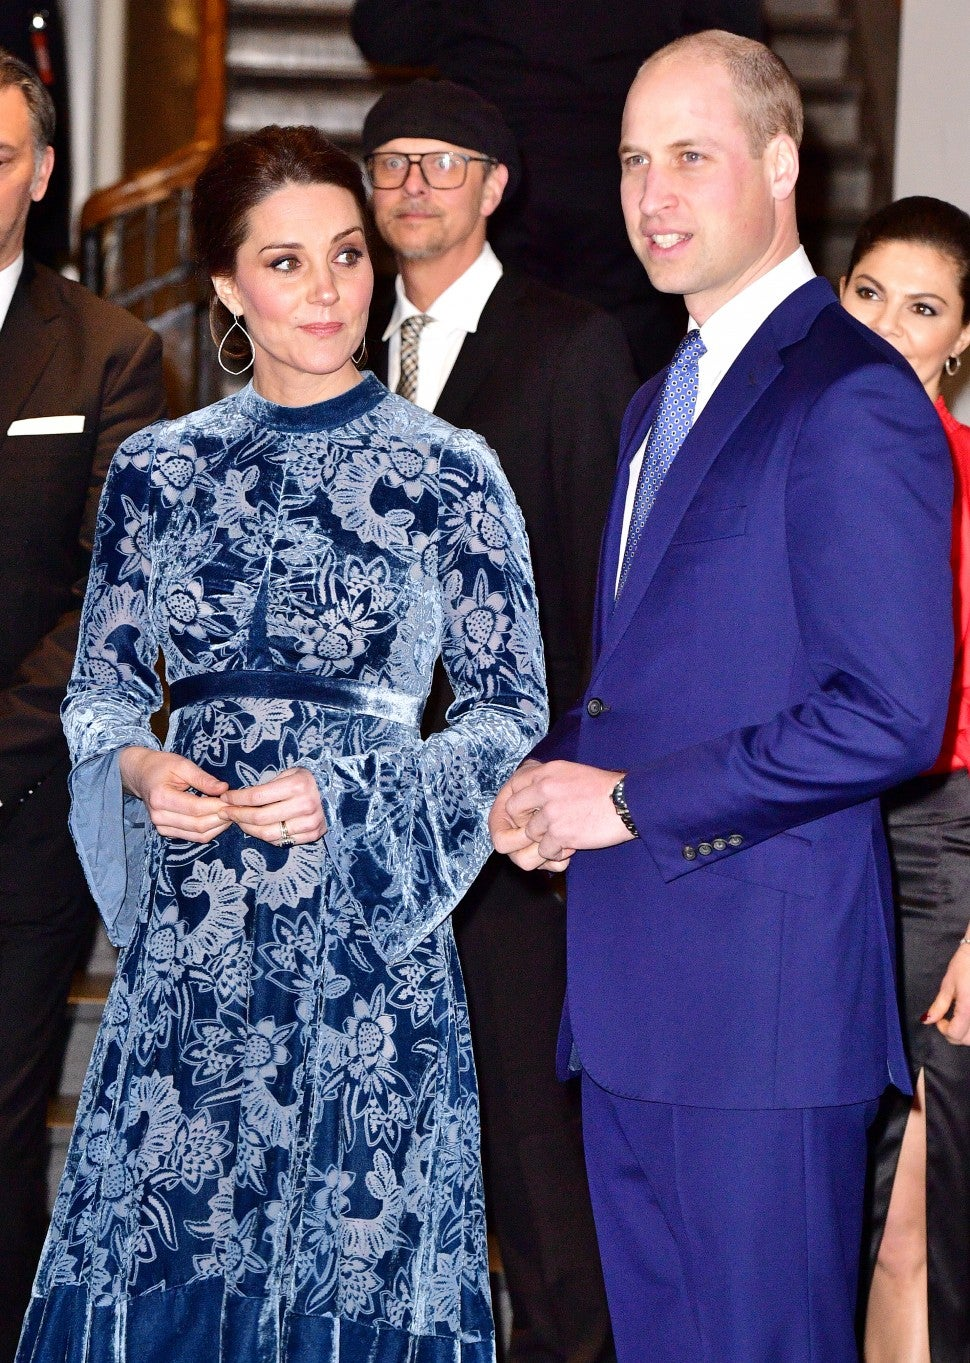 Kate Middleton and Prince William in Sweden